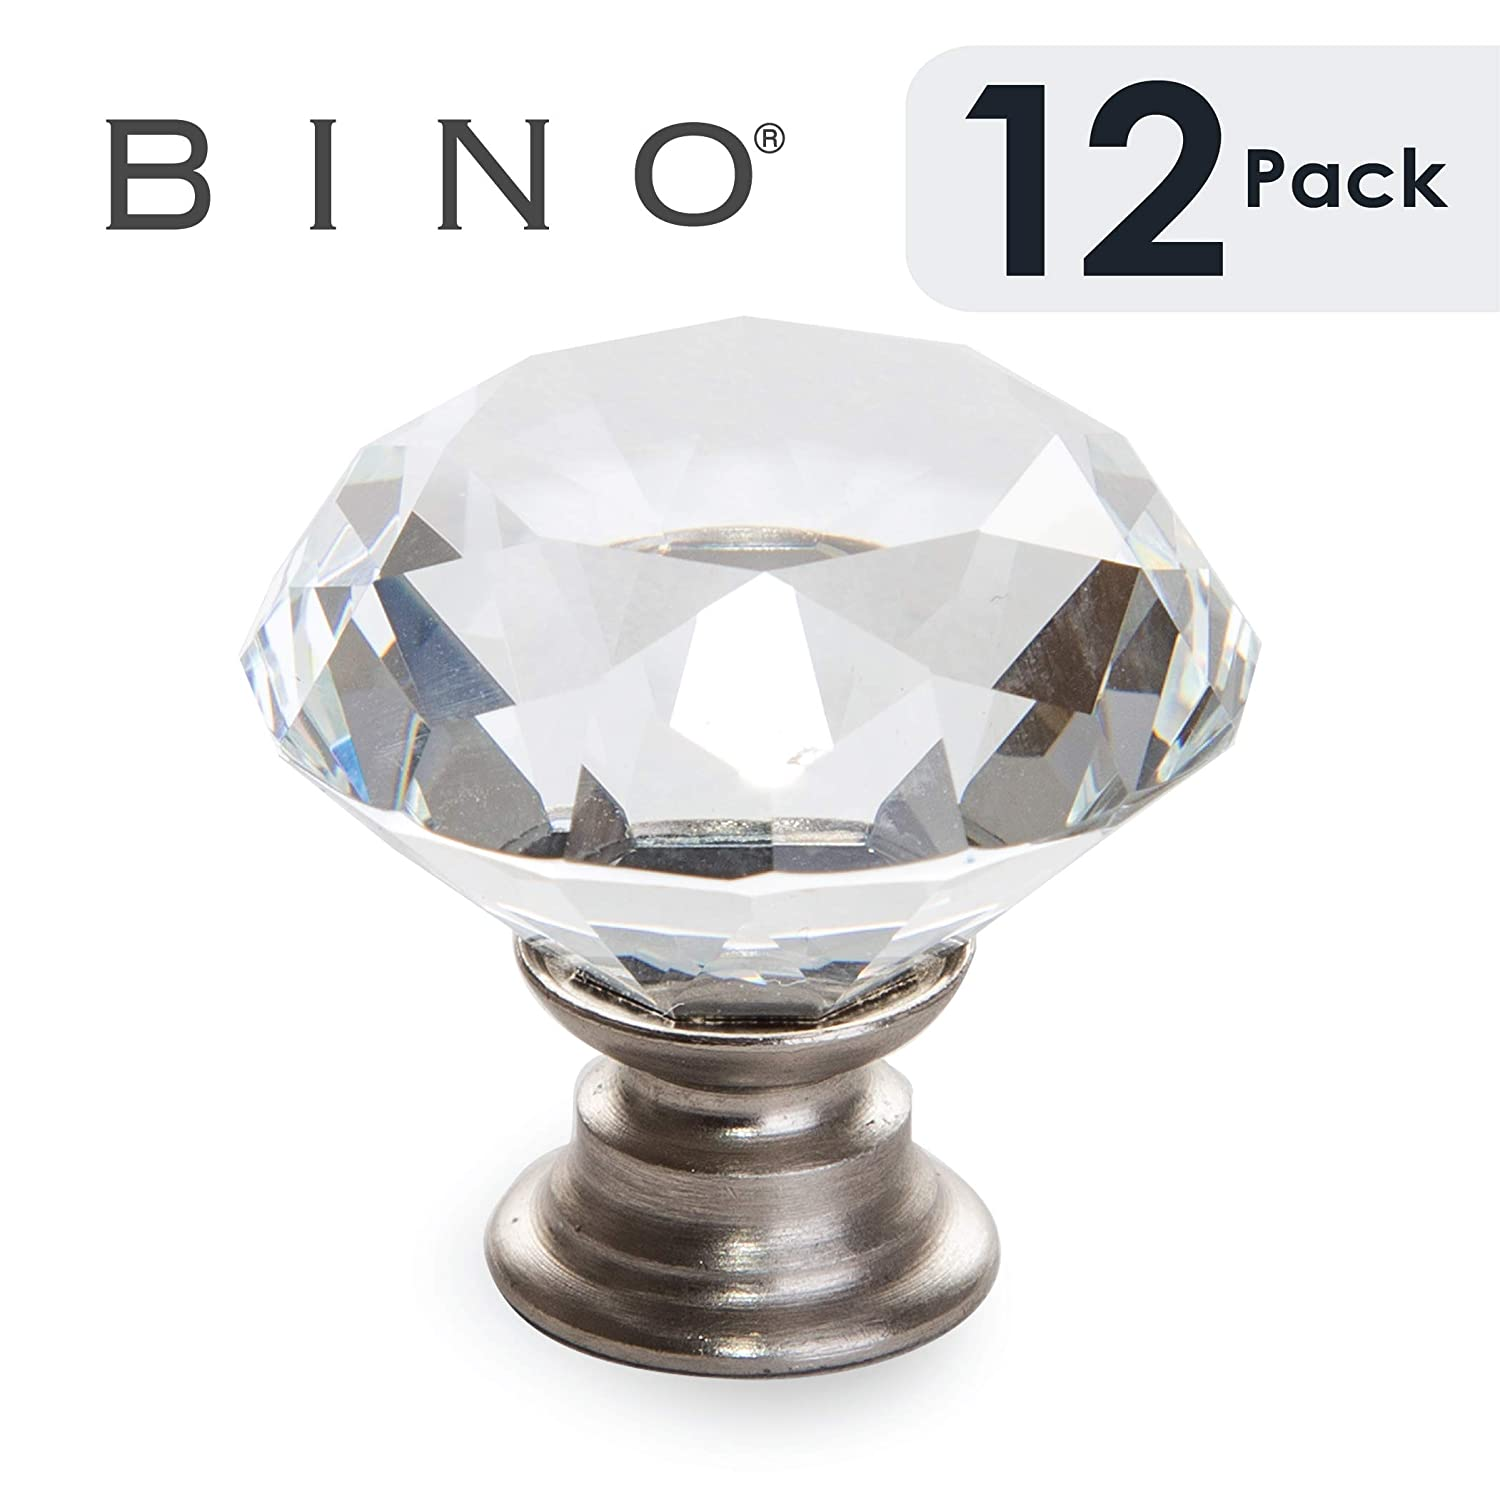 "BINO 12-Pack Crystal Cabinet Knobs Drawer Pull Handles - 1.25"" Diameter (32mm), Satin Nickel - Dresser Knobs for Dresser Drawers Crystal Knobs and Pulls Handles"